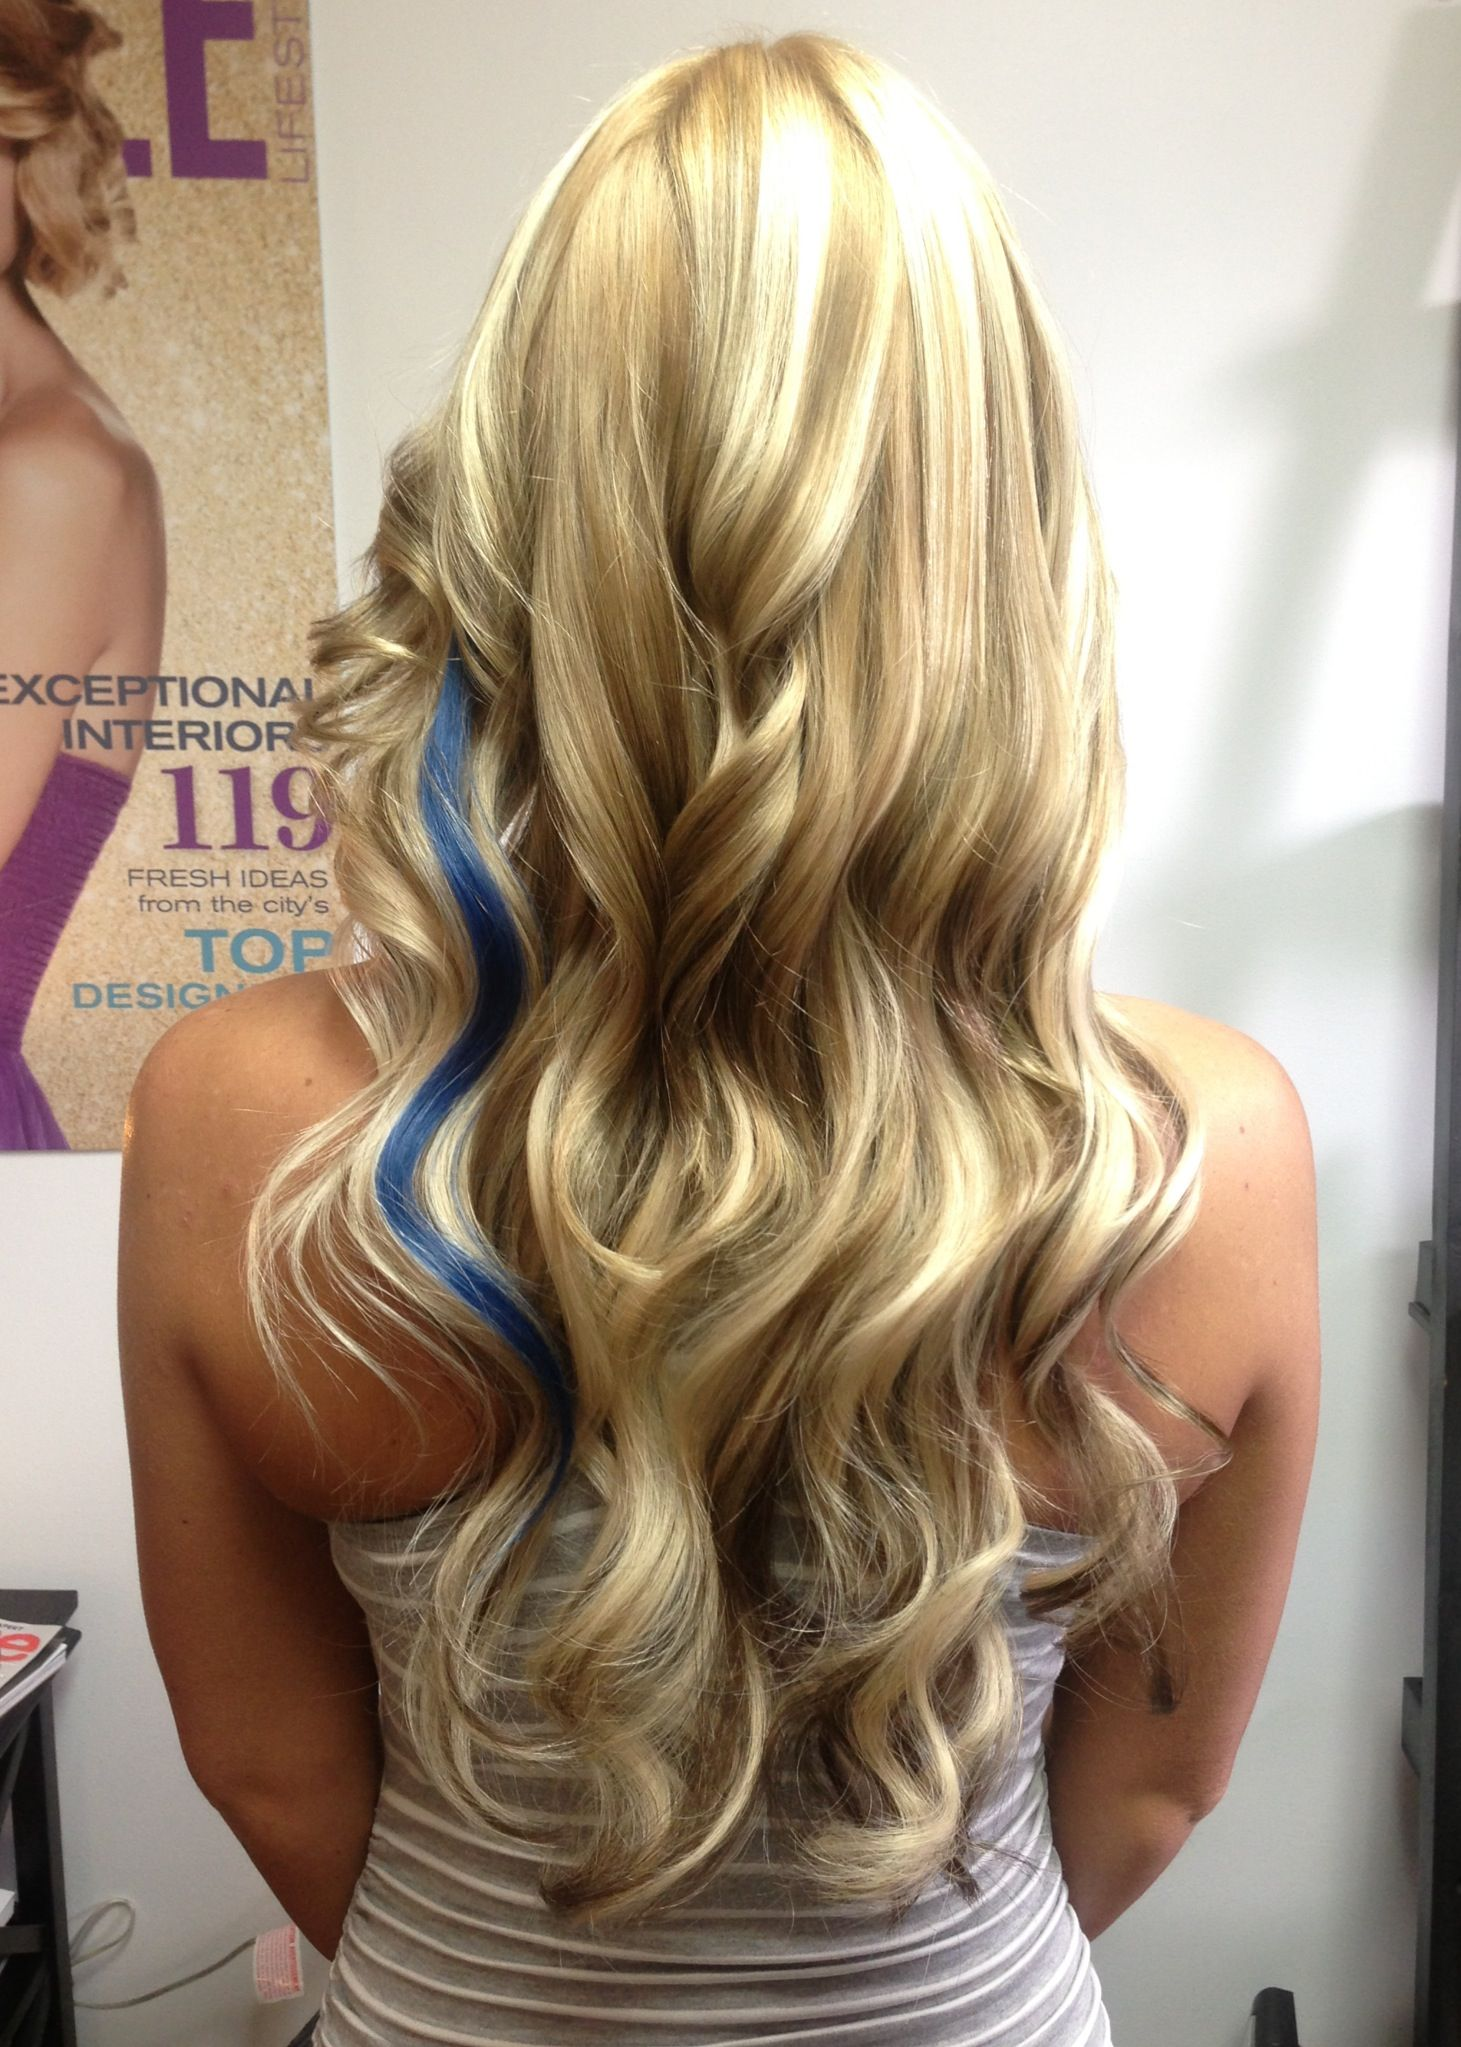 Long Blonde Hair With Lowlights And A Pop Of Color Hair Styles